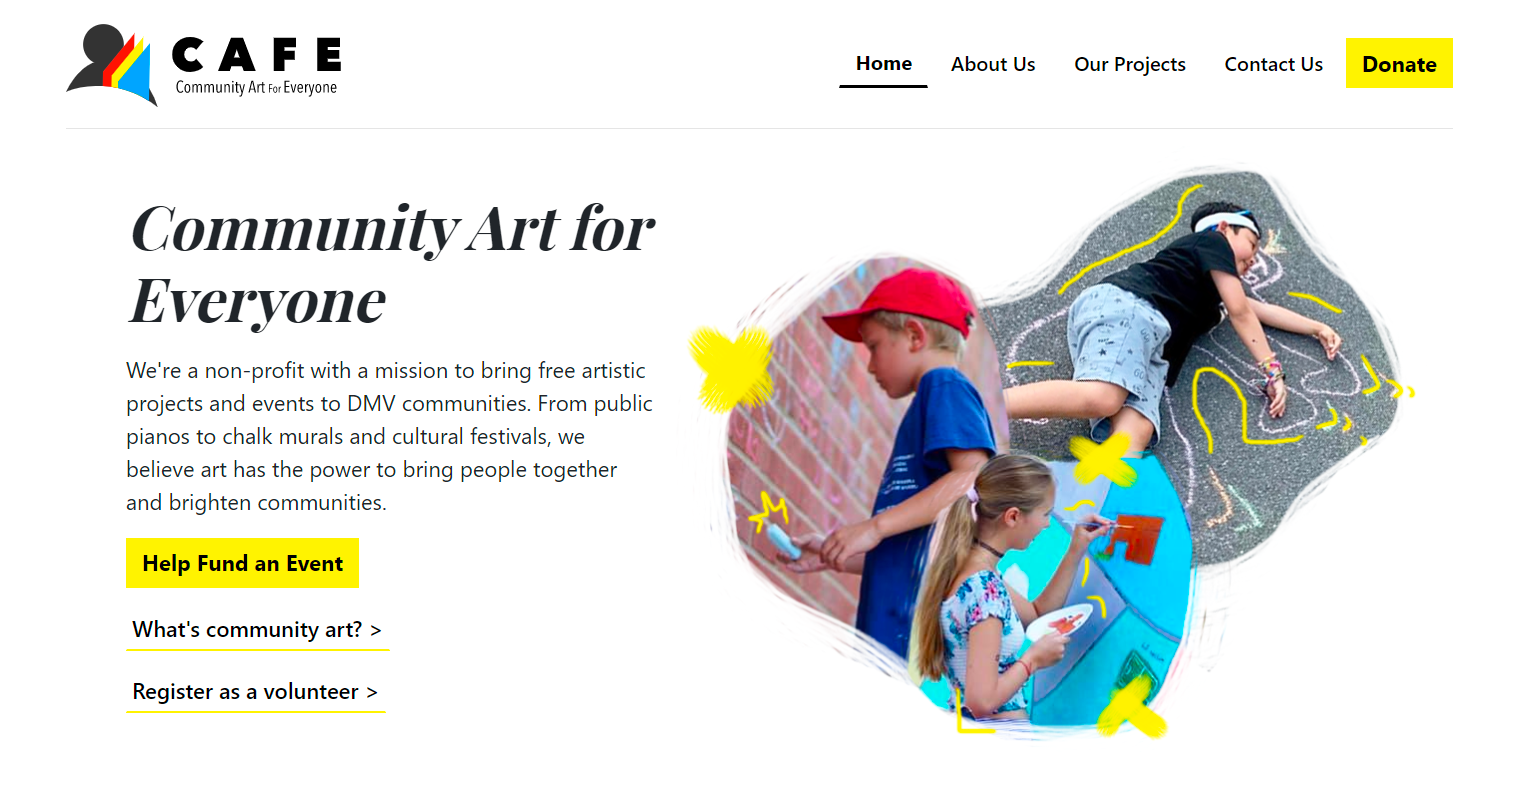 A clean white website with pictures of children at a chalk art event.